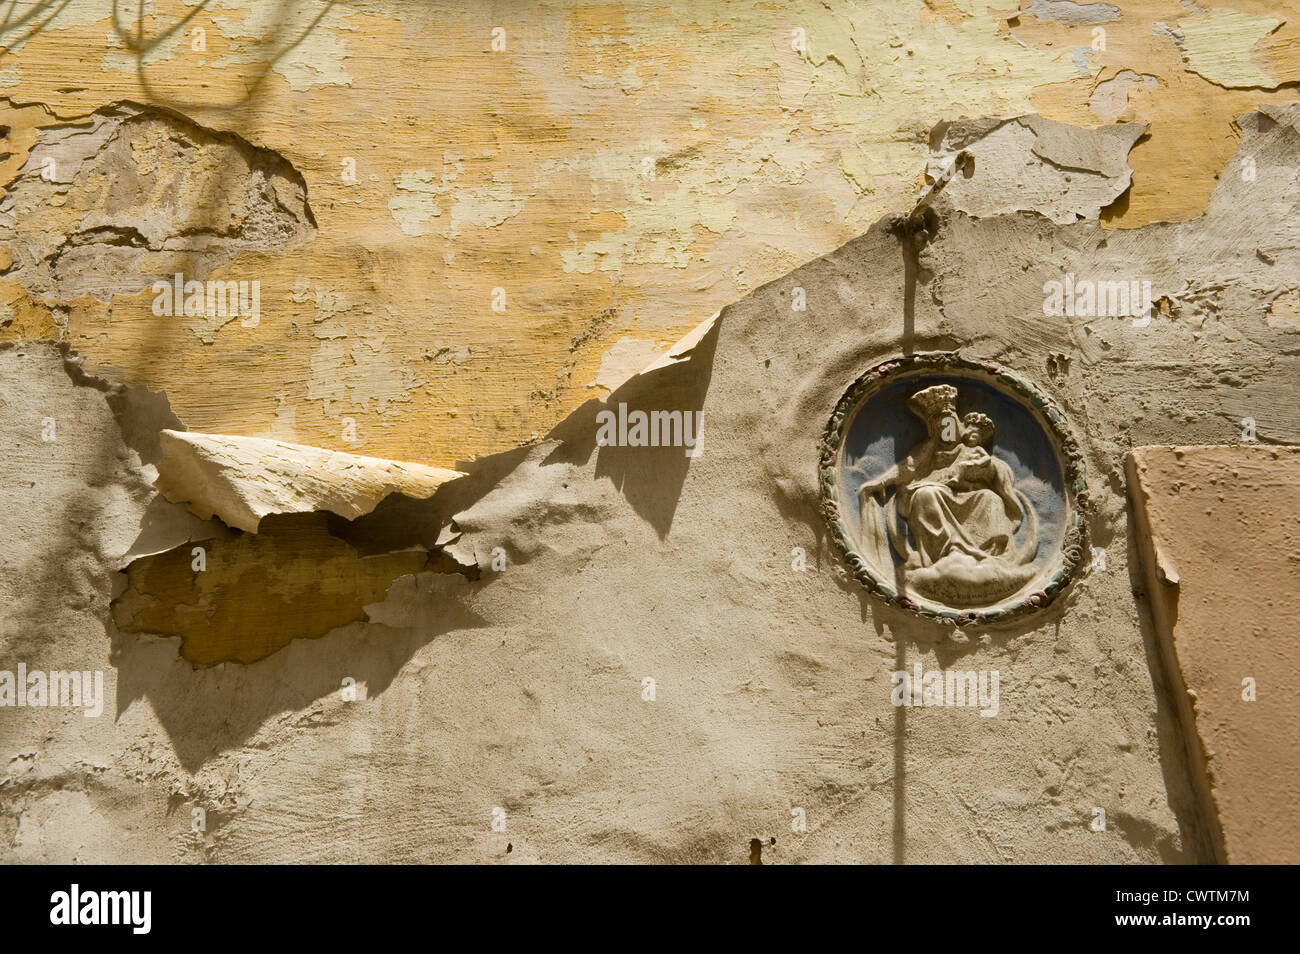 Flaking paint and small plaque in a backstreet of Valletta, capital city of Malta. - Stock Image